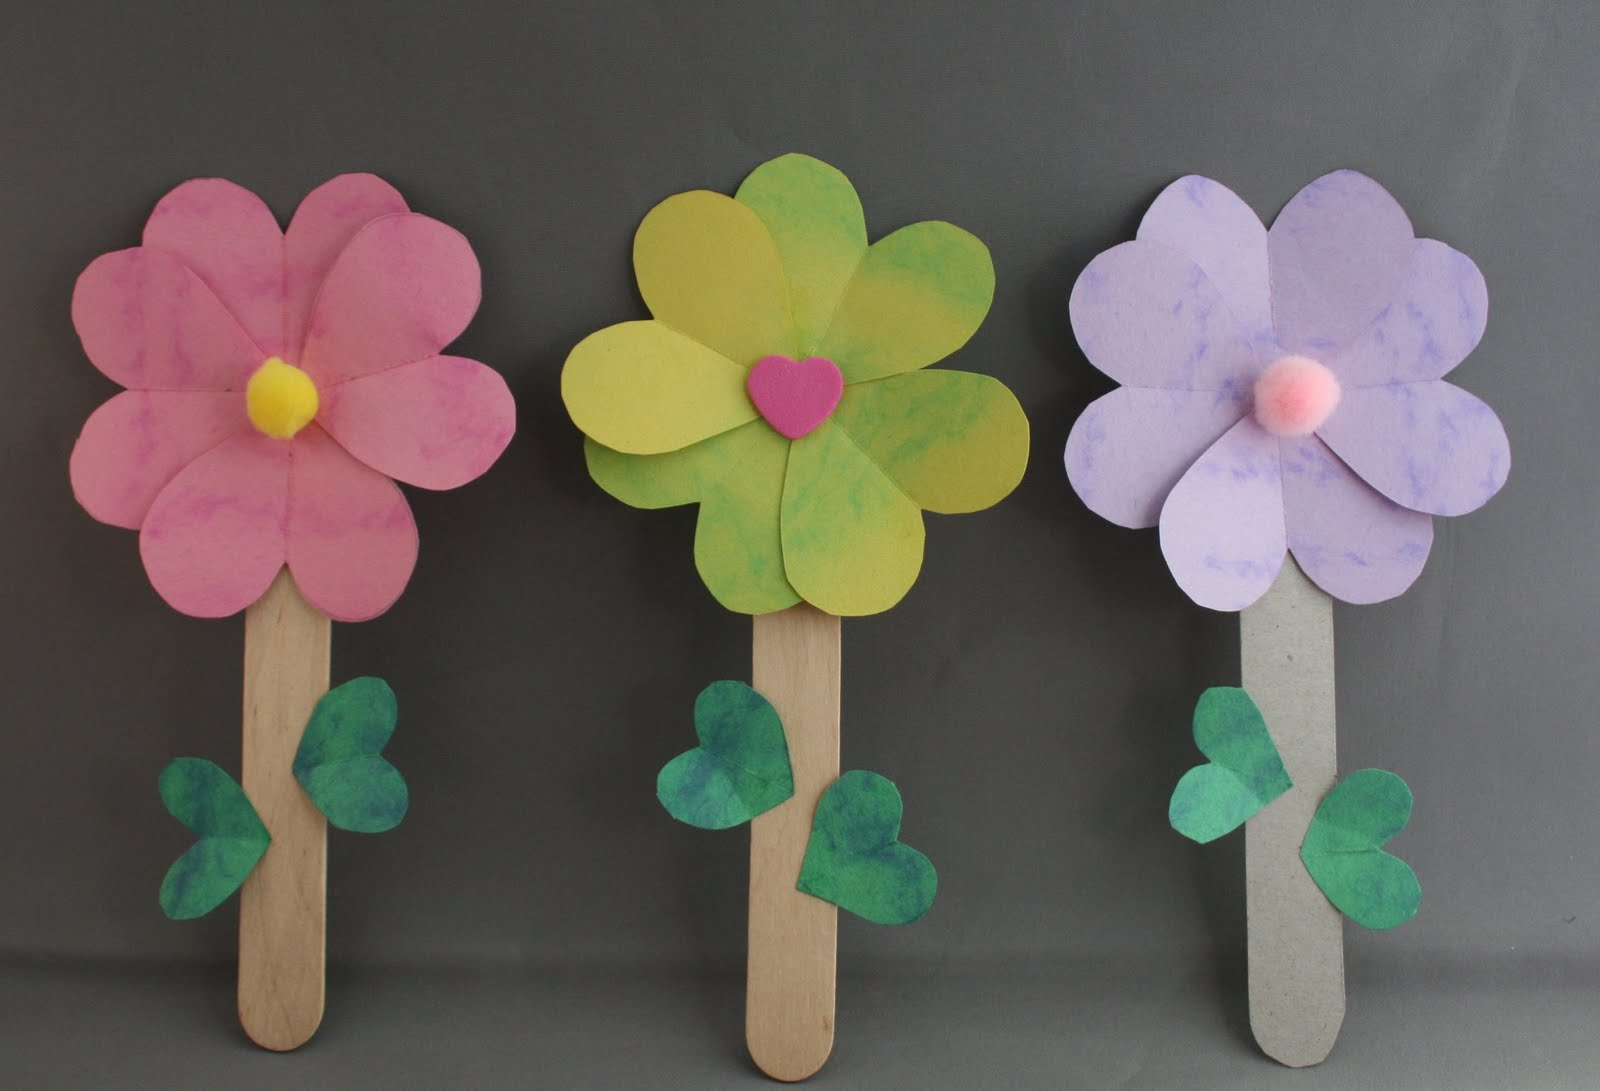 Craft Flowers For Kids Part - 21: The Construction Details Are Include On The Site So I Will Not Repeat Them.  Http://www.familycorner.com/family/kids/crafts/heart-flowers.shtml